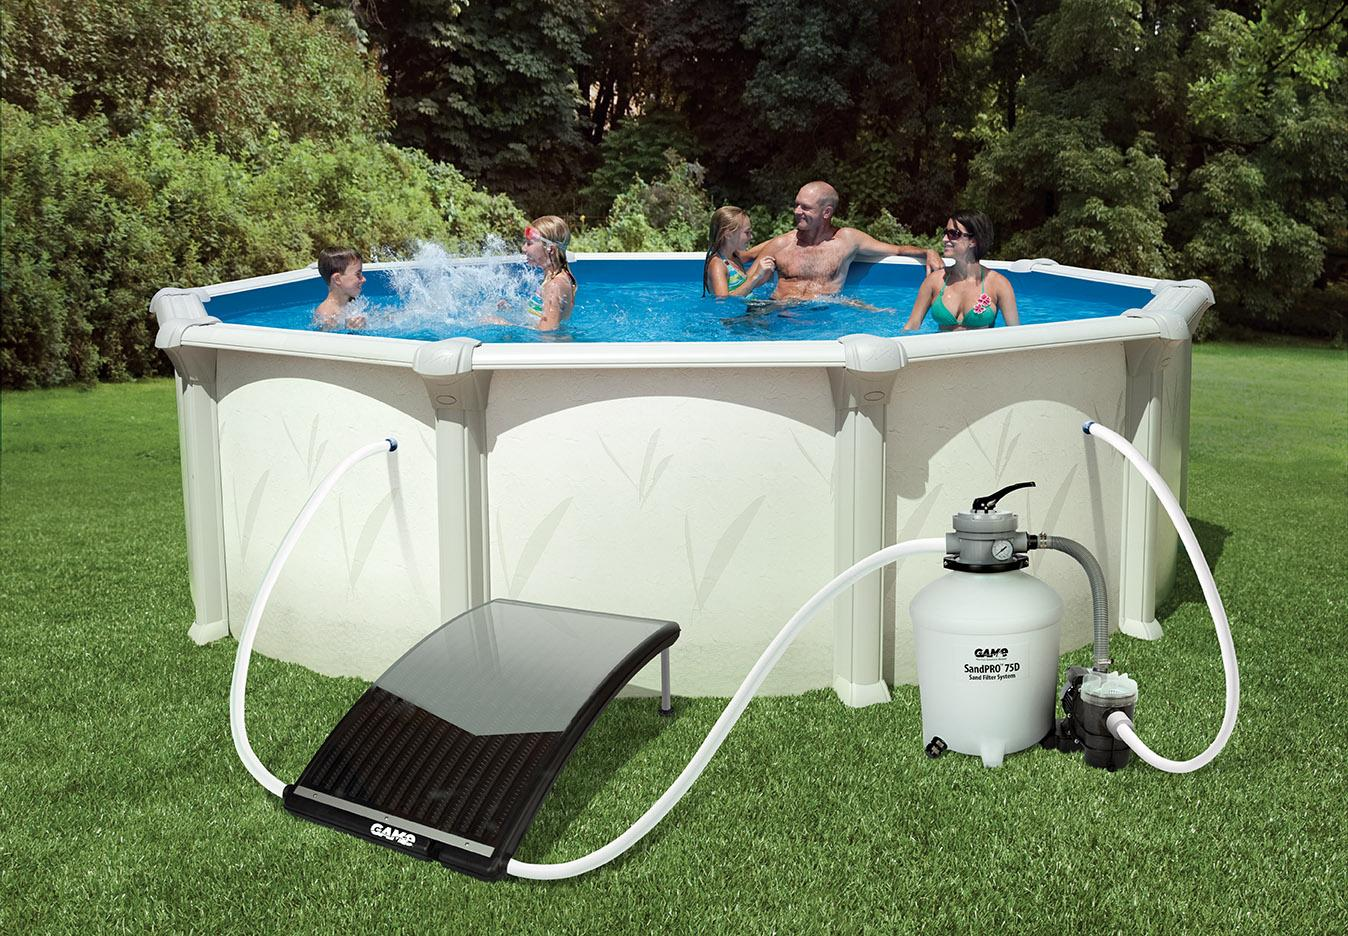 10 best above ground pool heaters in 2019 reviews - How to put hot water in a swimming pool ...